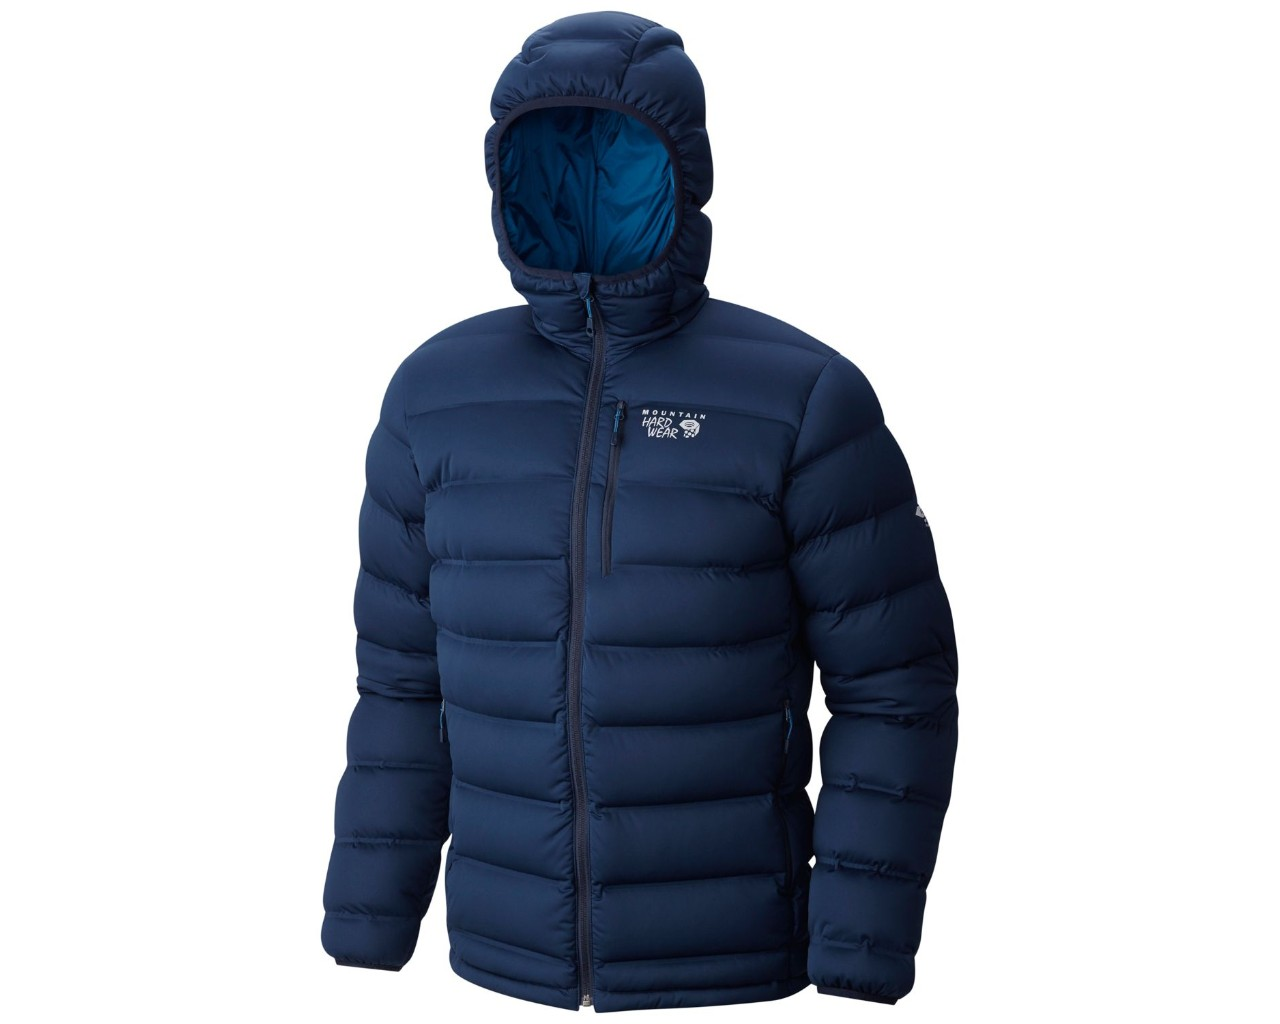 Doudoune capuche Stretchdown Plus Hooded Jacket Mountain Hardwear